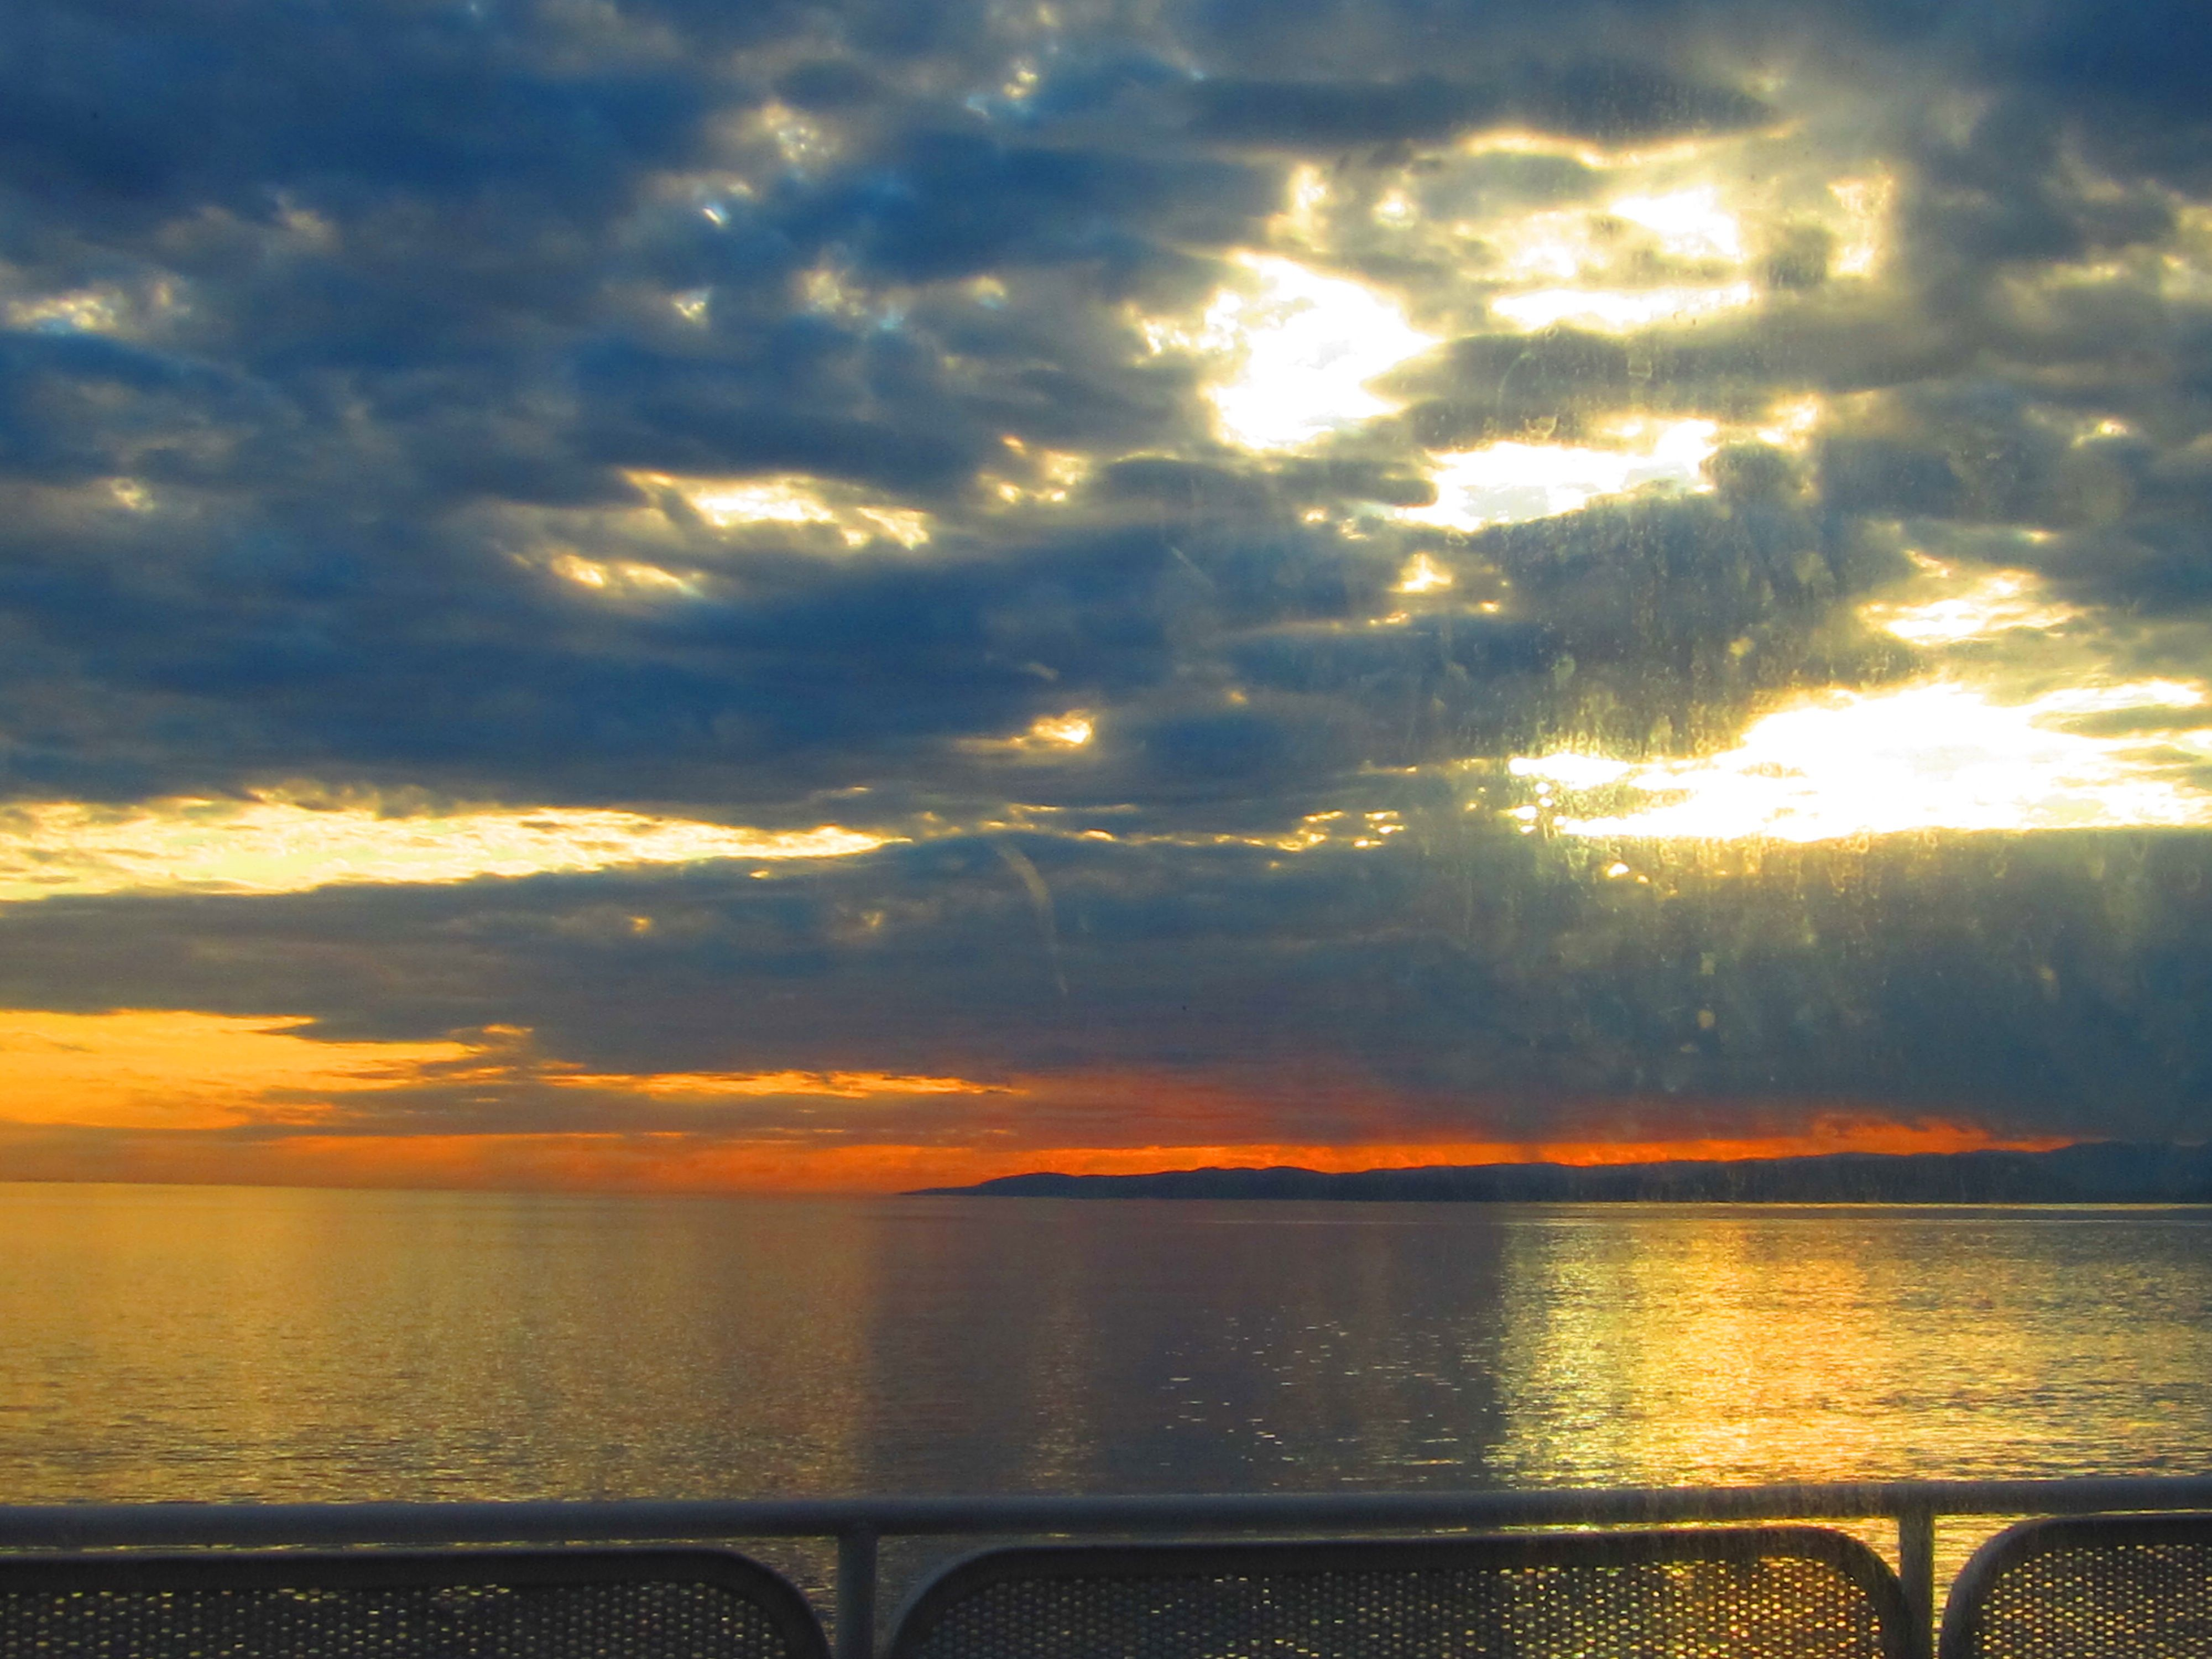 Sunset traveling via Ferry from Victoria, Canada to Port Angeles, WA